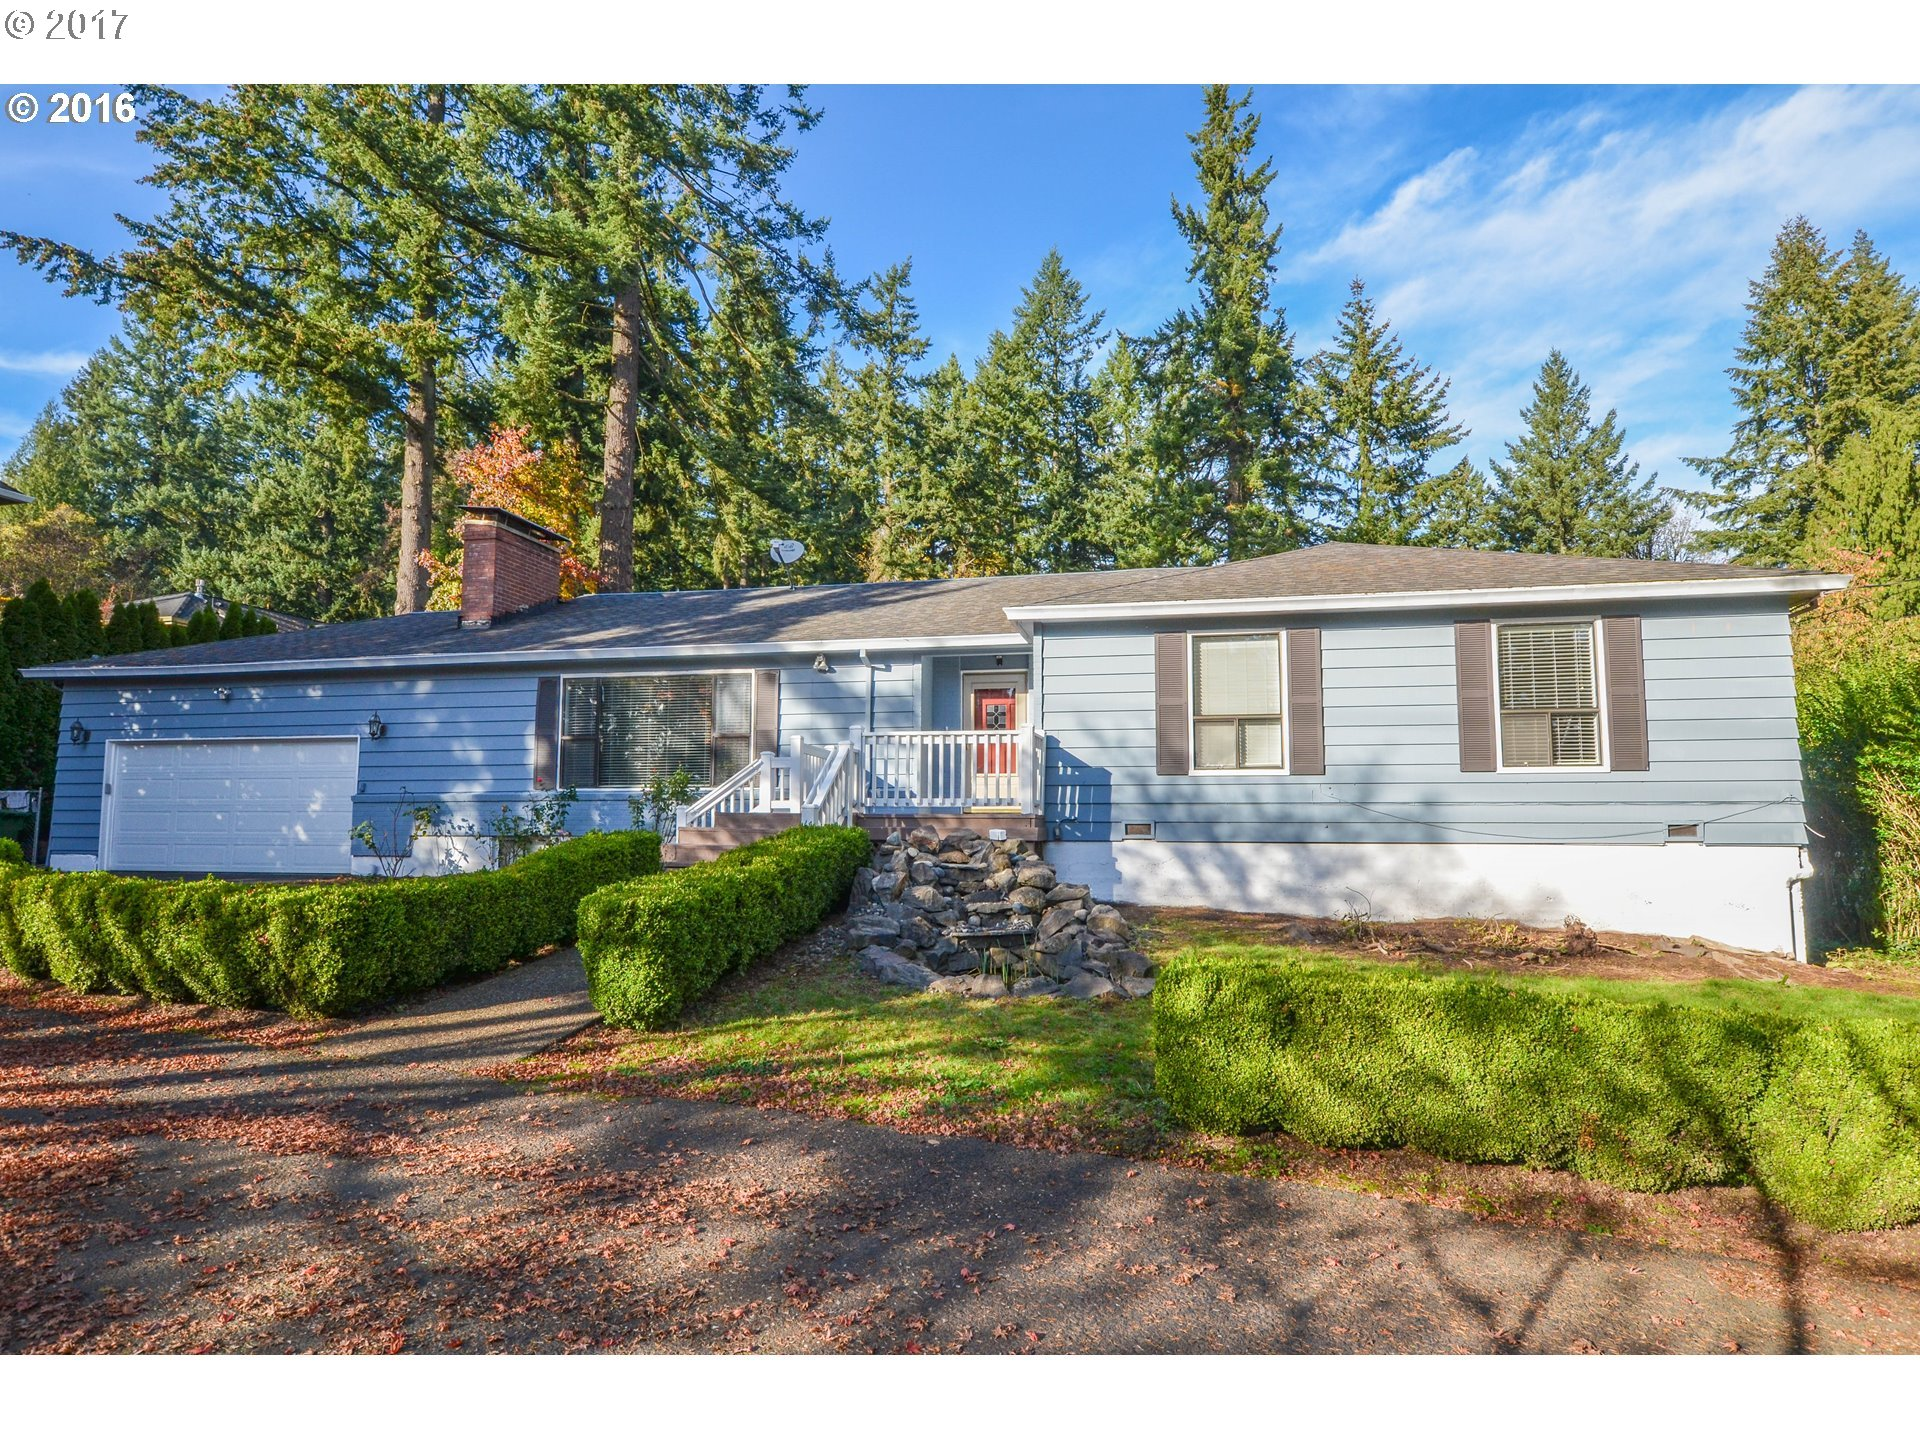 605 COUNTRY CLUB RD, Lake Oswego, OR 97034